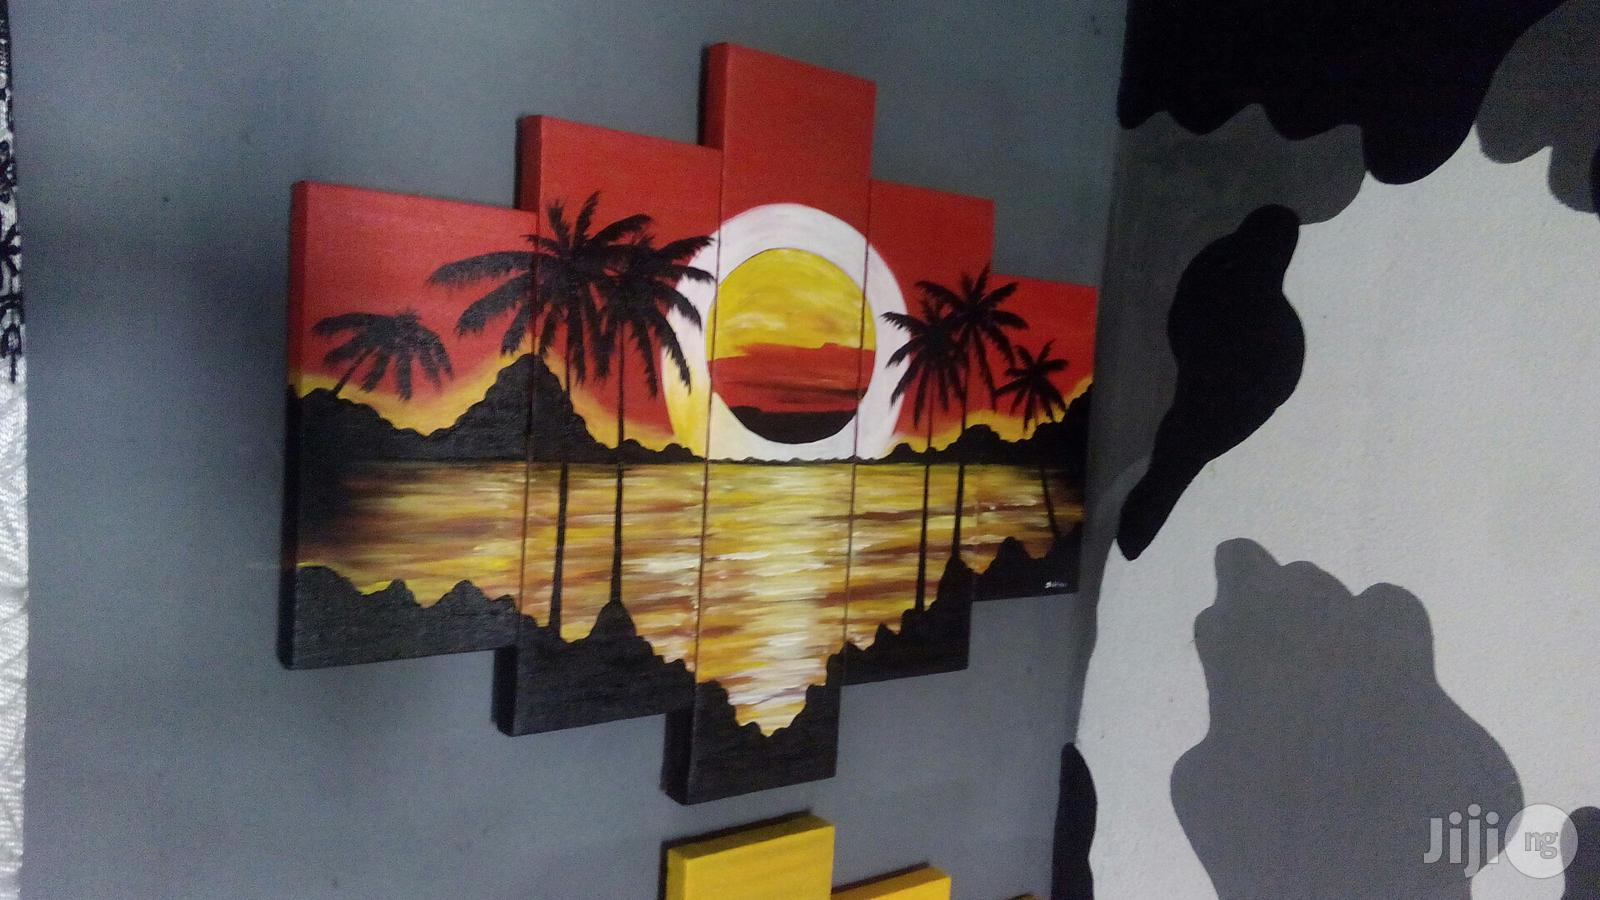 Beautiful Paintings for All Decor